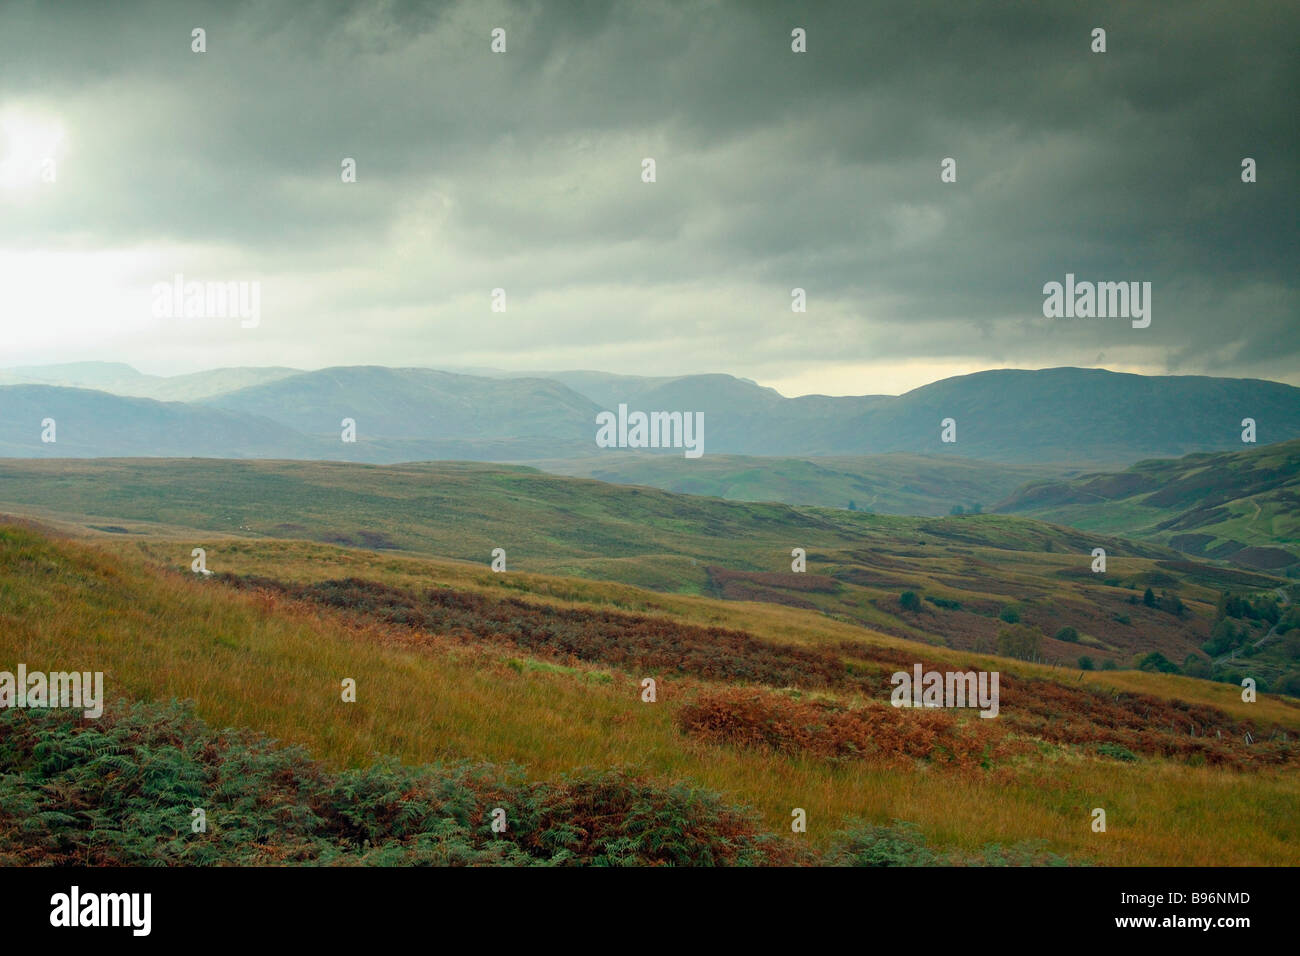 Looking north into the Scottish Highlands, from Callander Craig, Perthshire - Stock Image